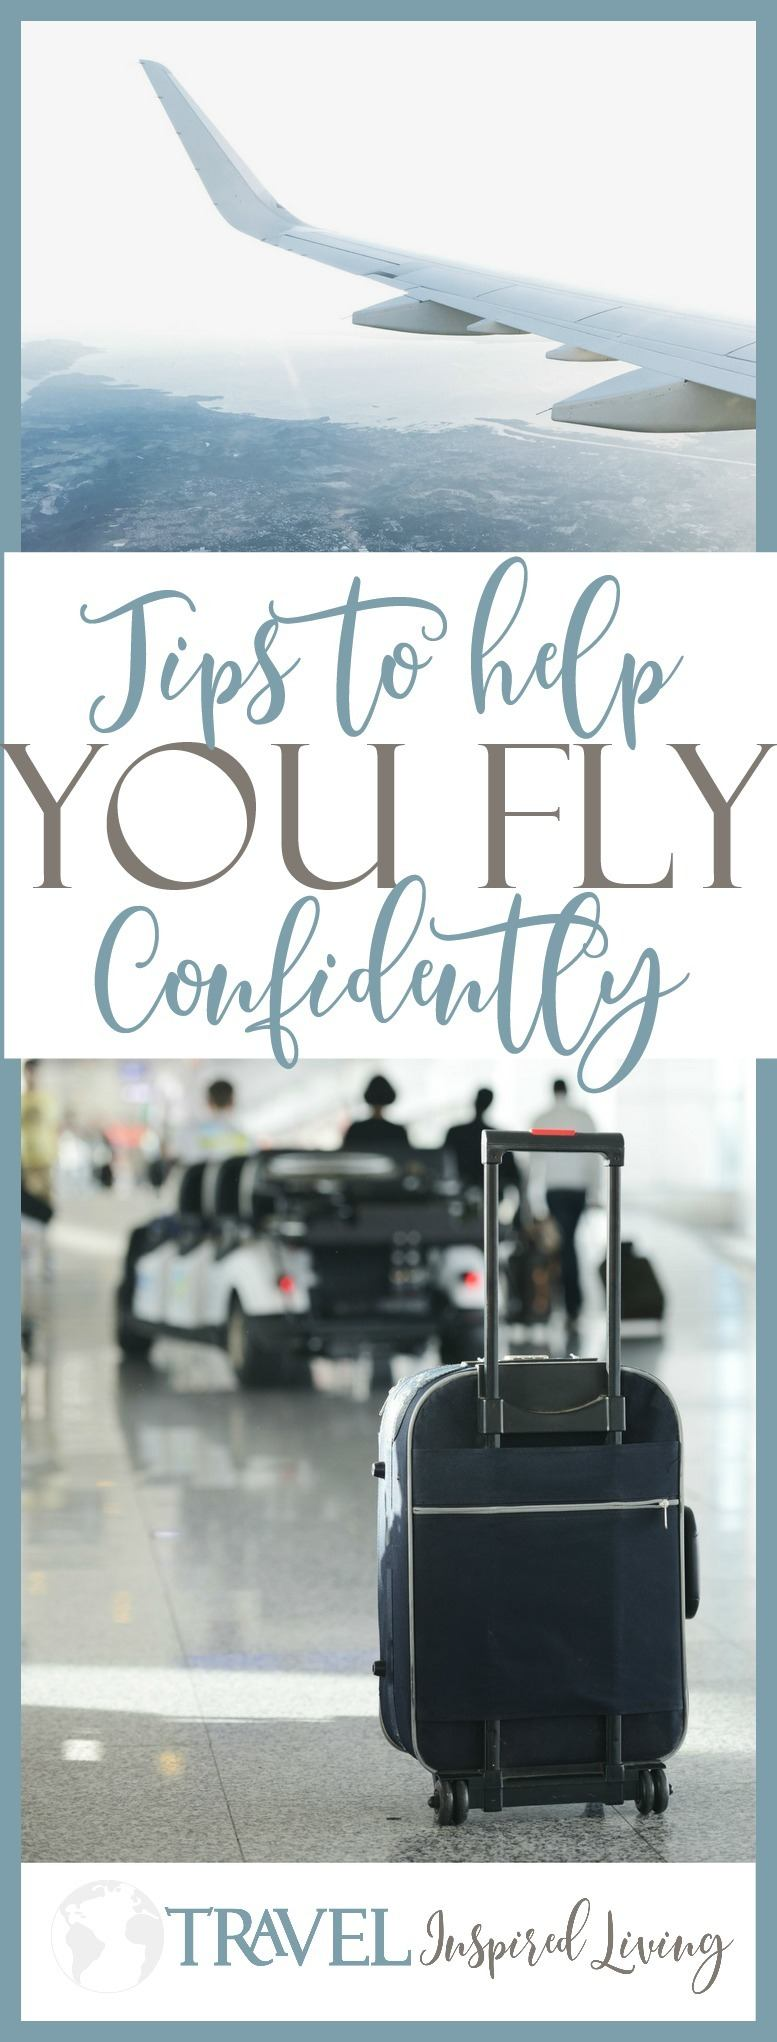 Tips to help you fly confidently